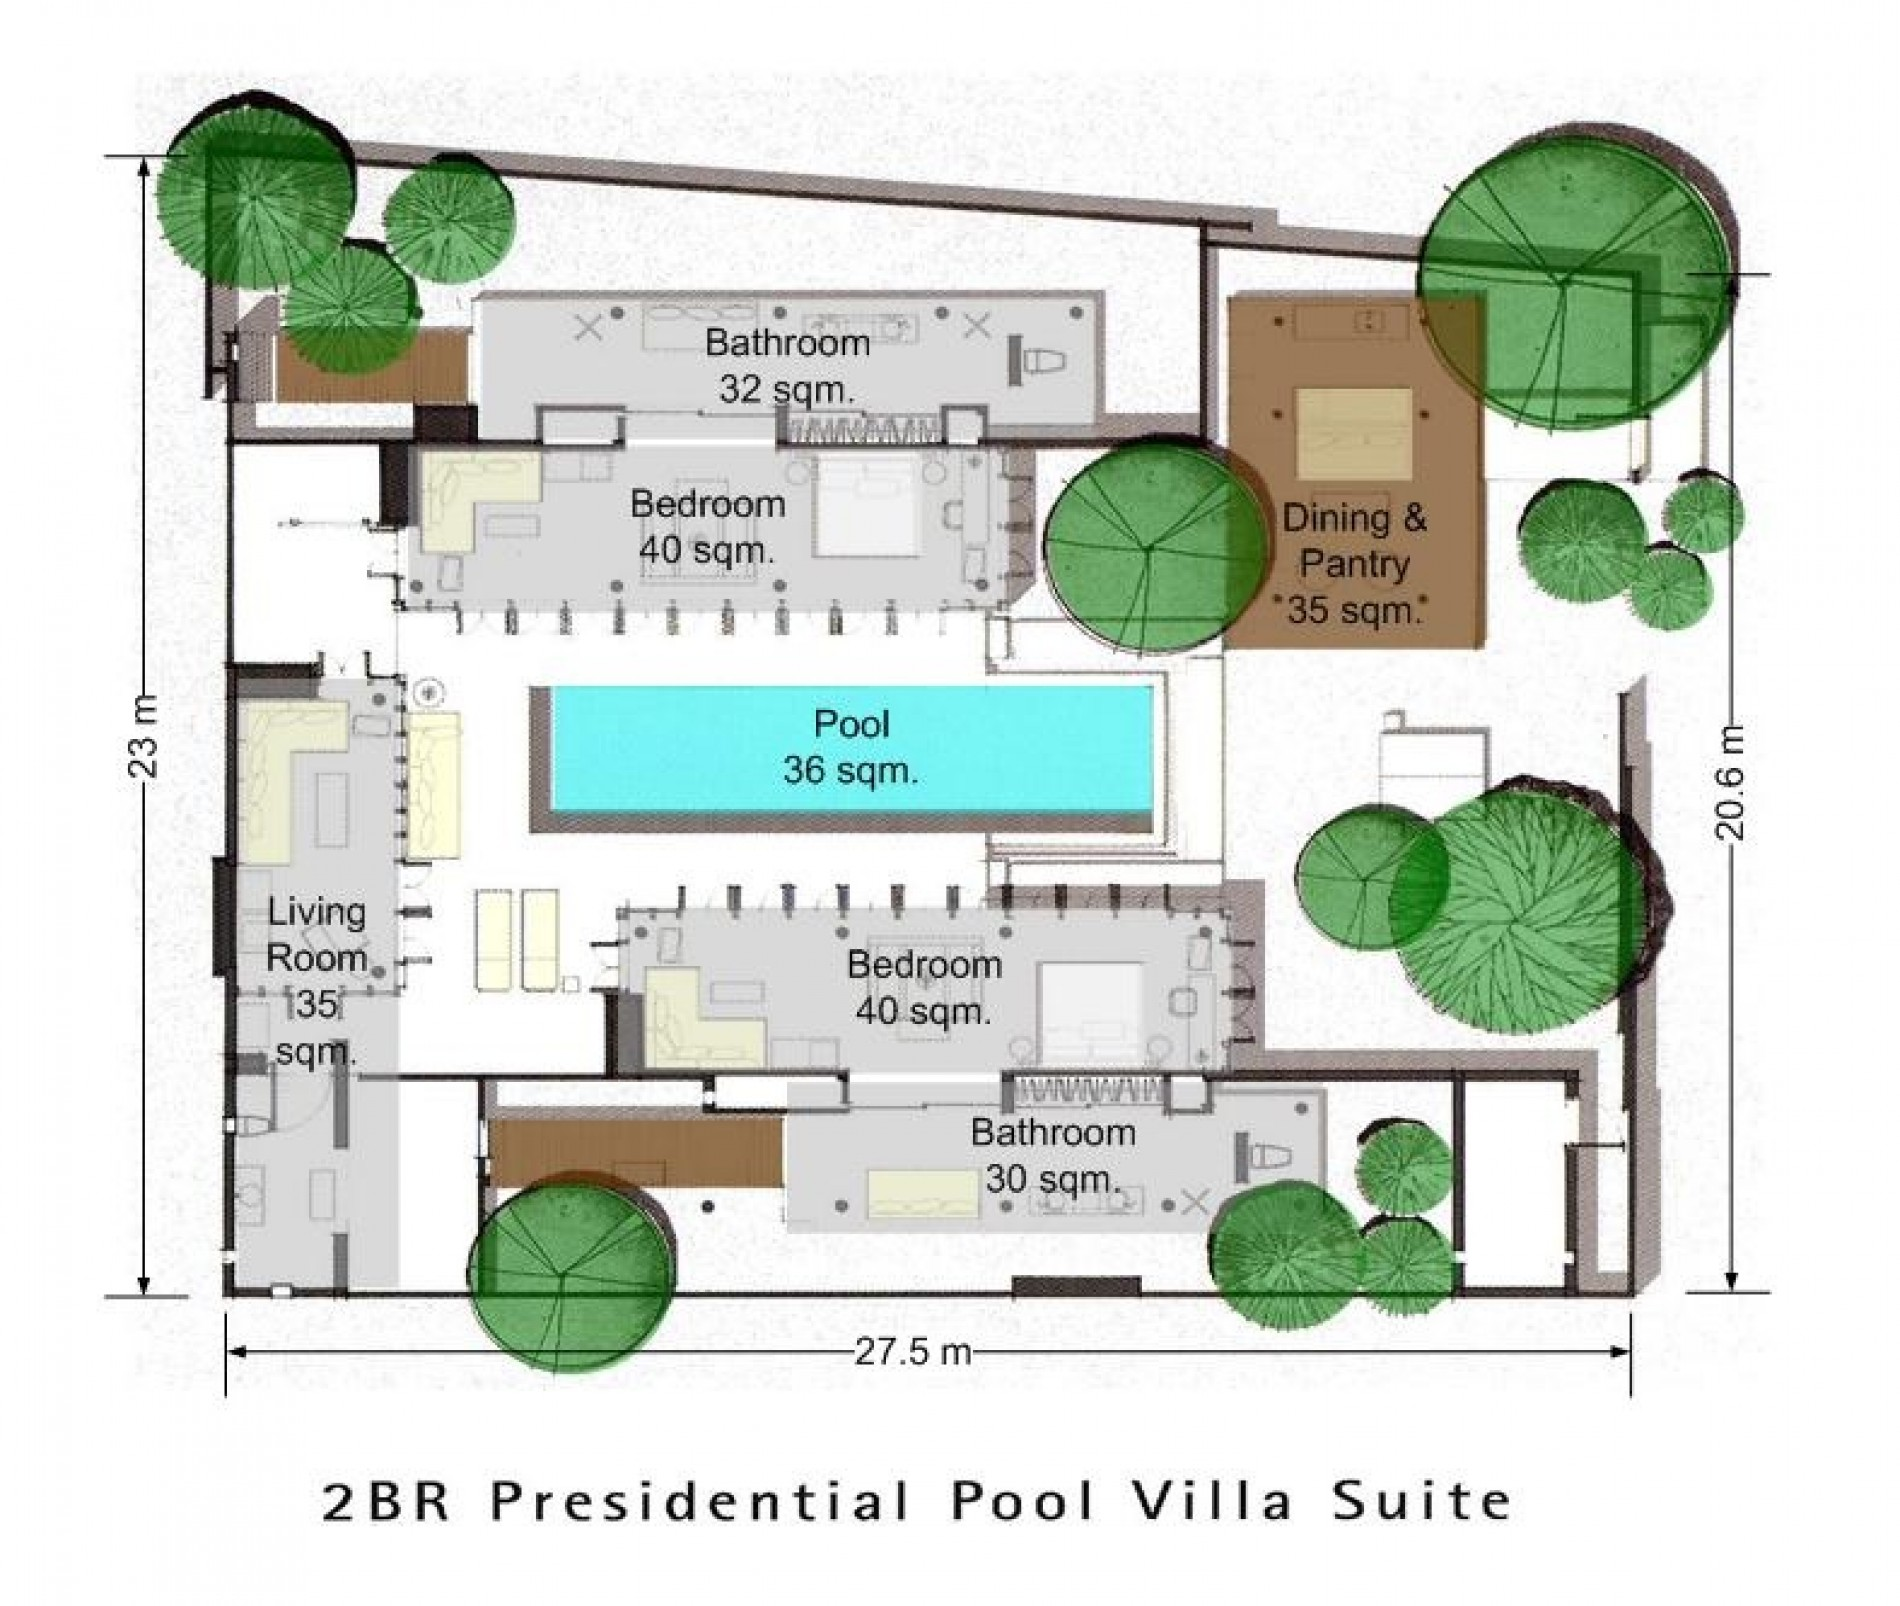 Sala phuket presidential pool villa for Pool villa design